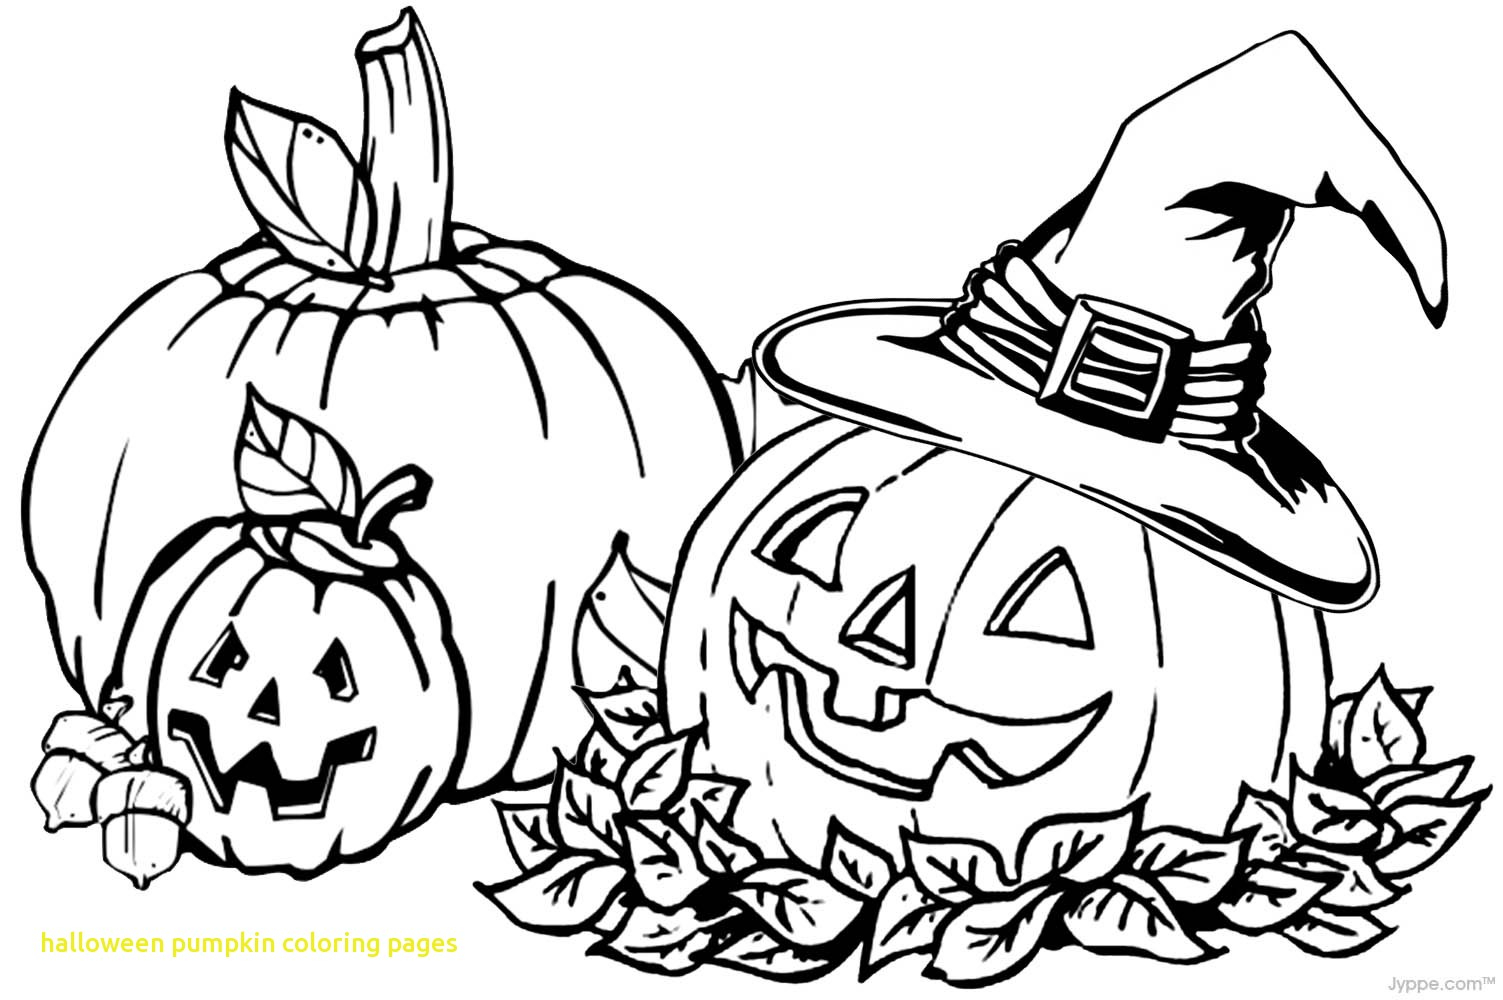 Printable Pumpkin Coloring Pages Free Printable Coloring Pages Pumpkins At Getdrawings Free For